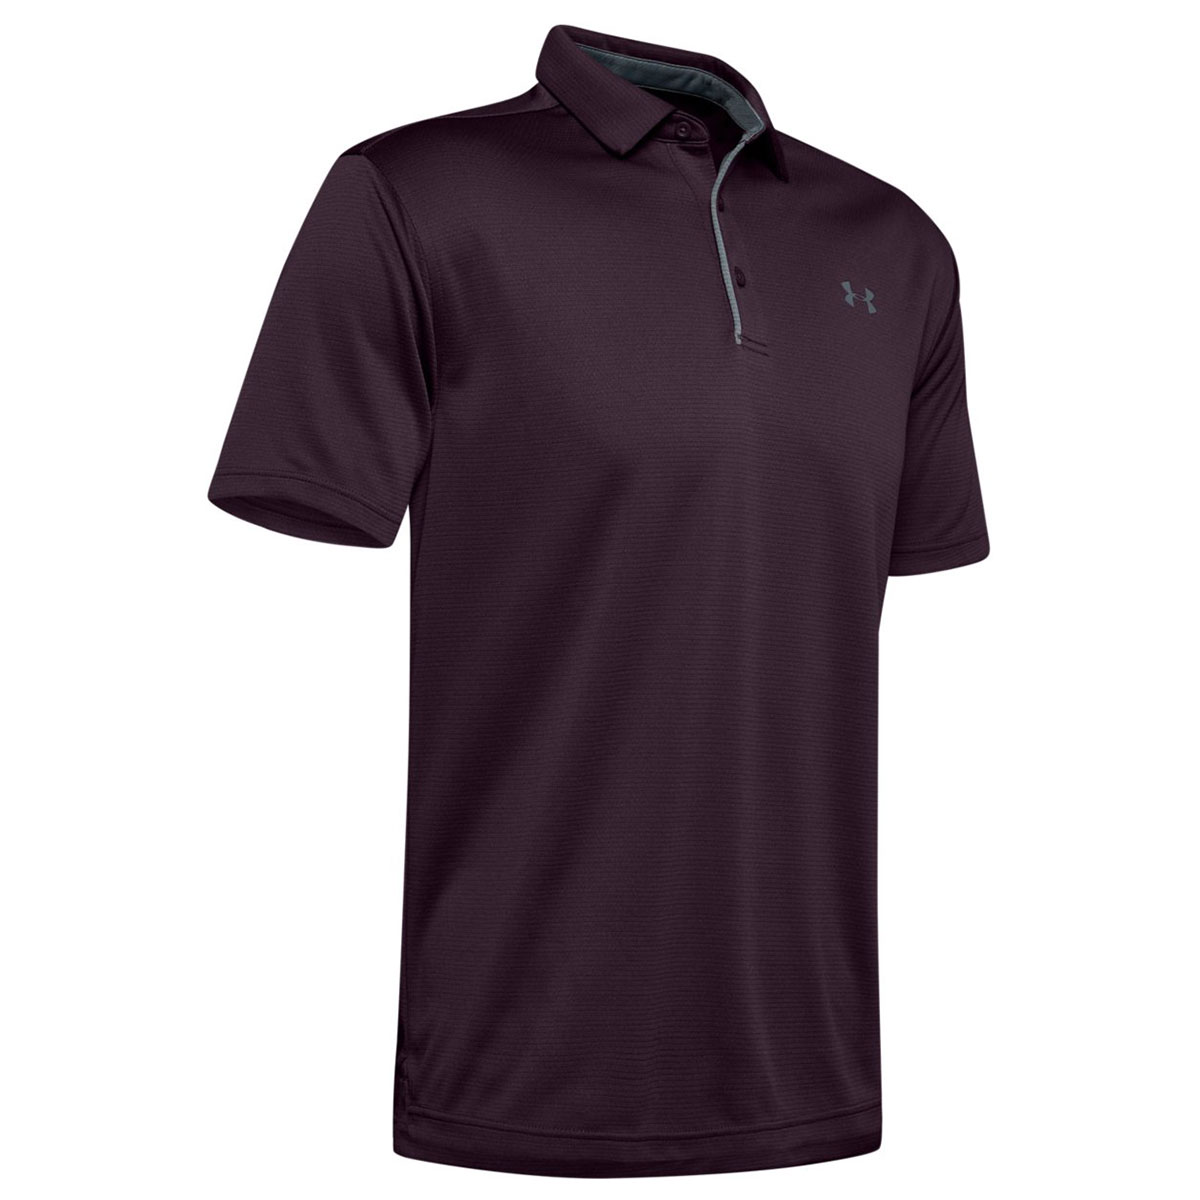 Under-Armour-Mens-2019-Golf-Tech-Wicking-Textured-Soft-Light-Polo-Shirt thumbnail 42